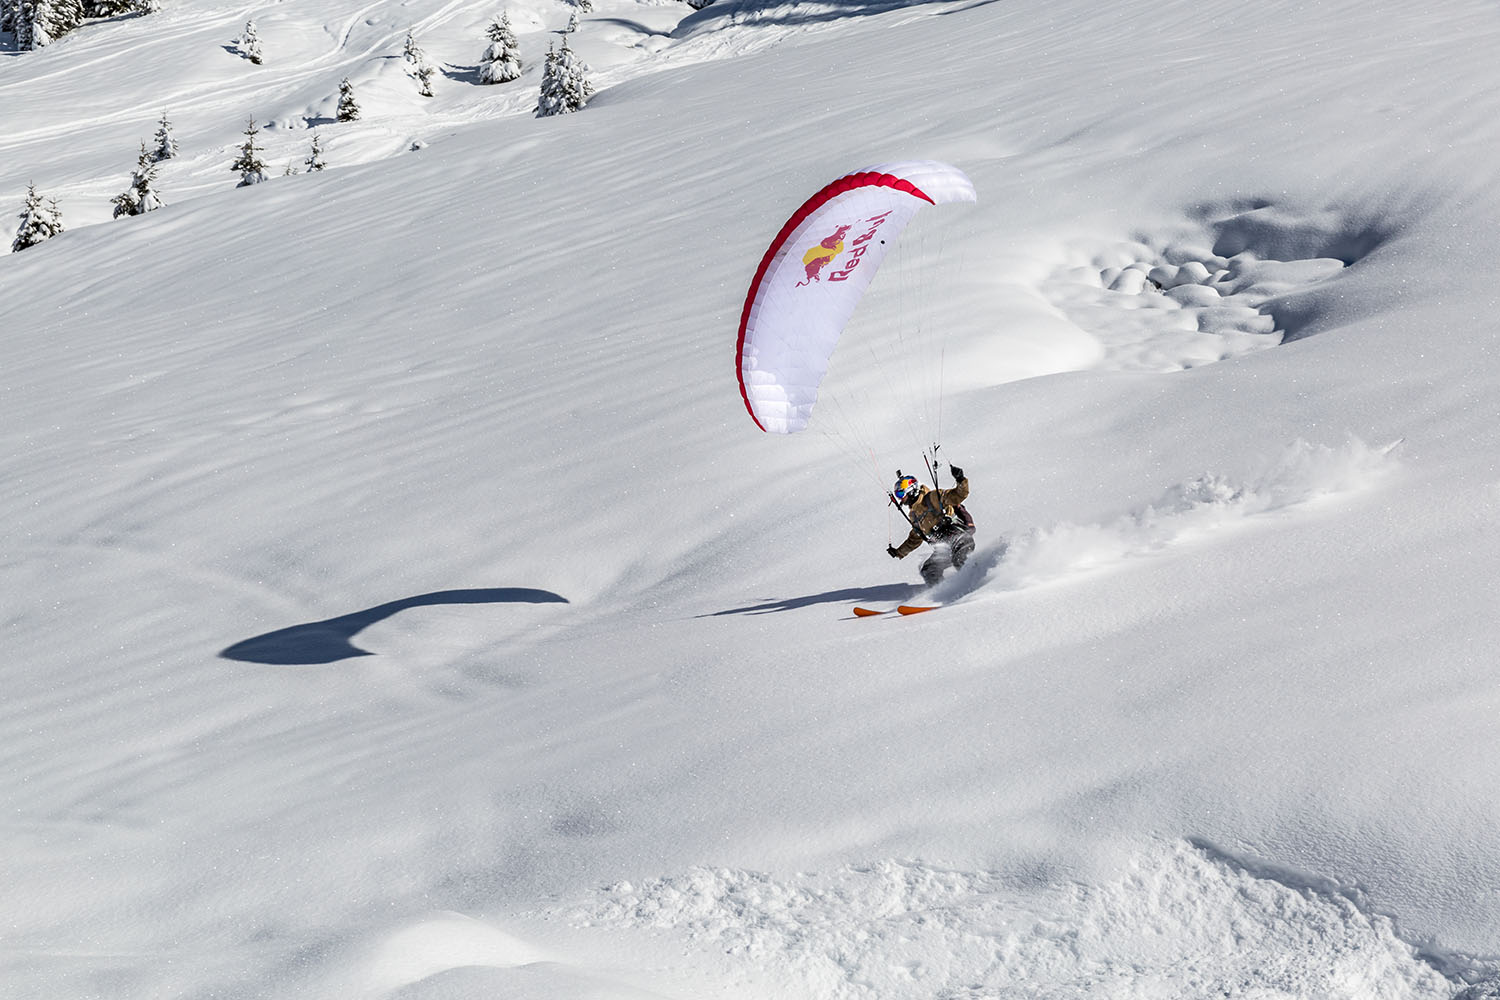 Photo de Valentin Delluc se posant sur la neige à Avoriaz en speed riding